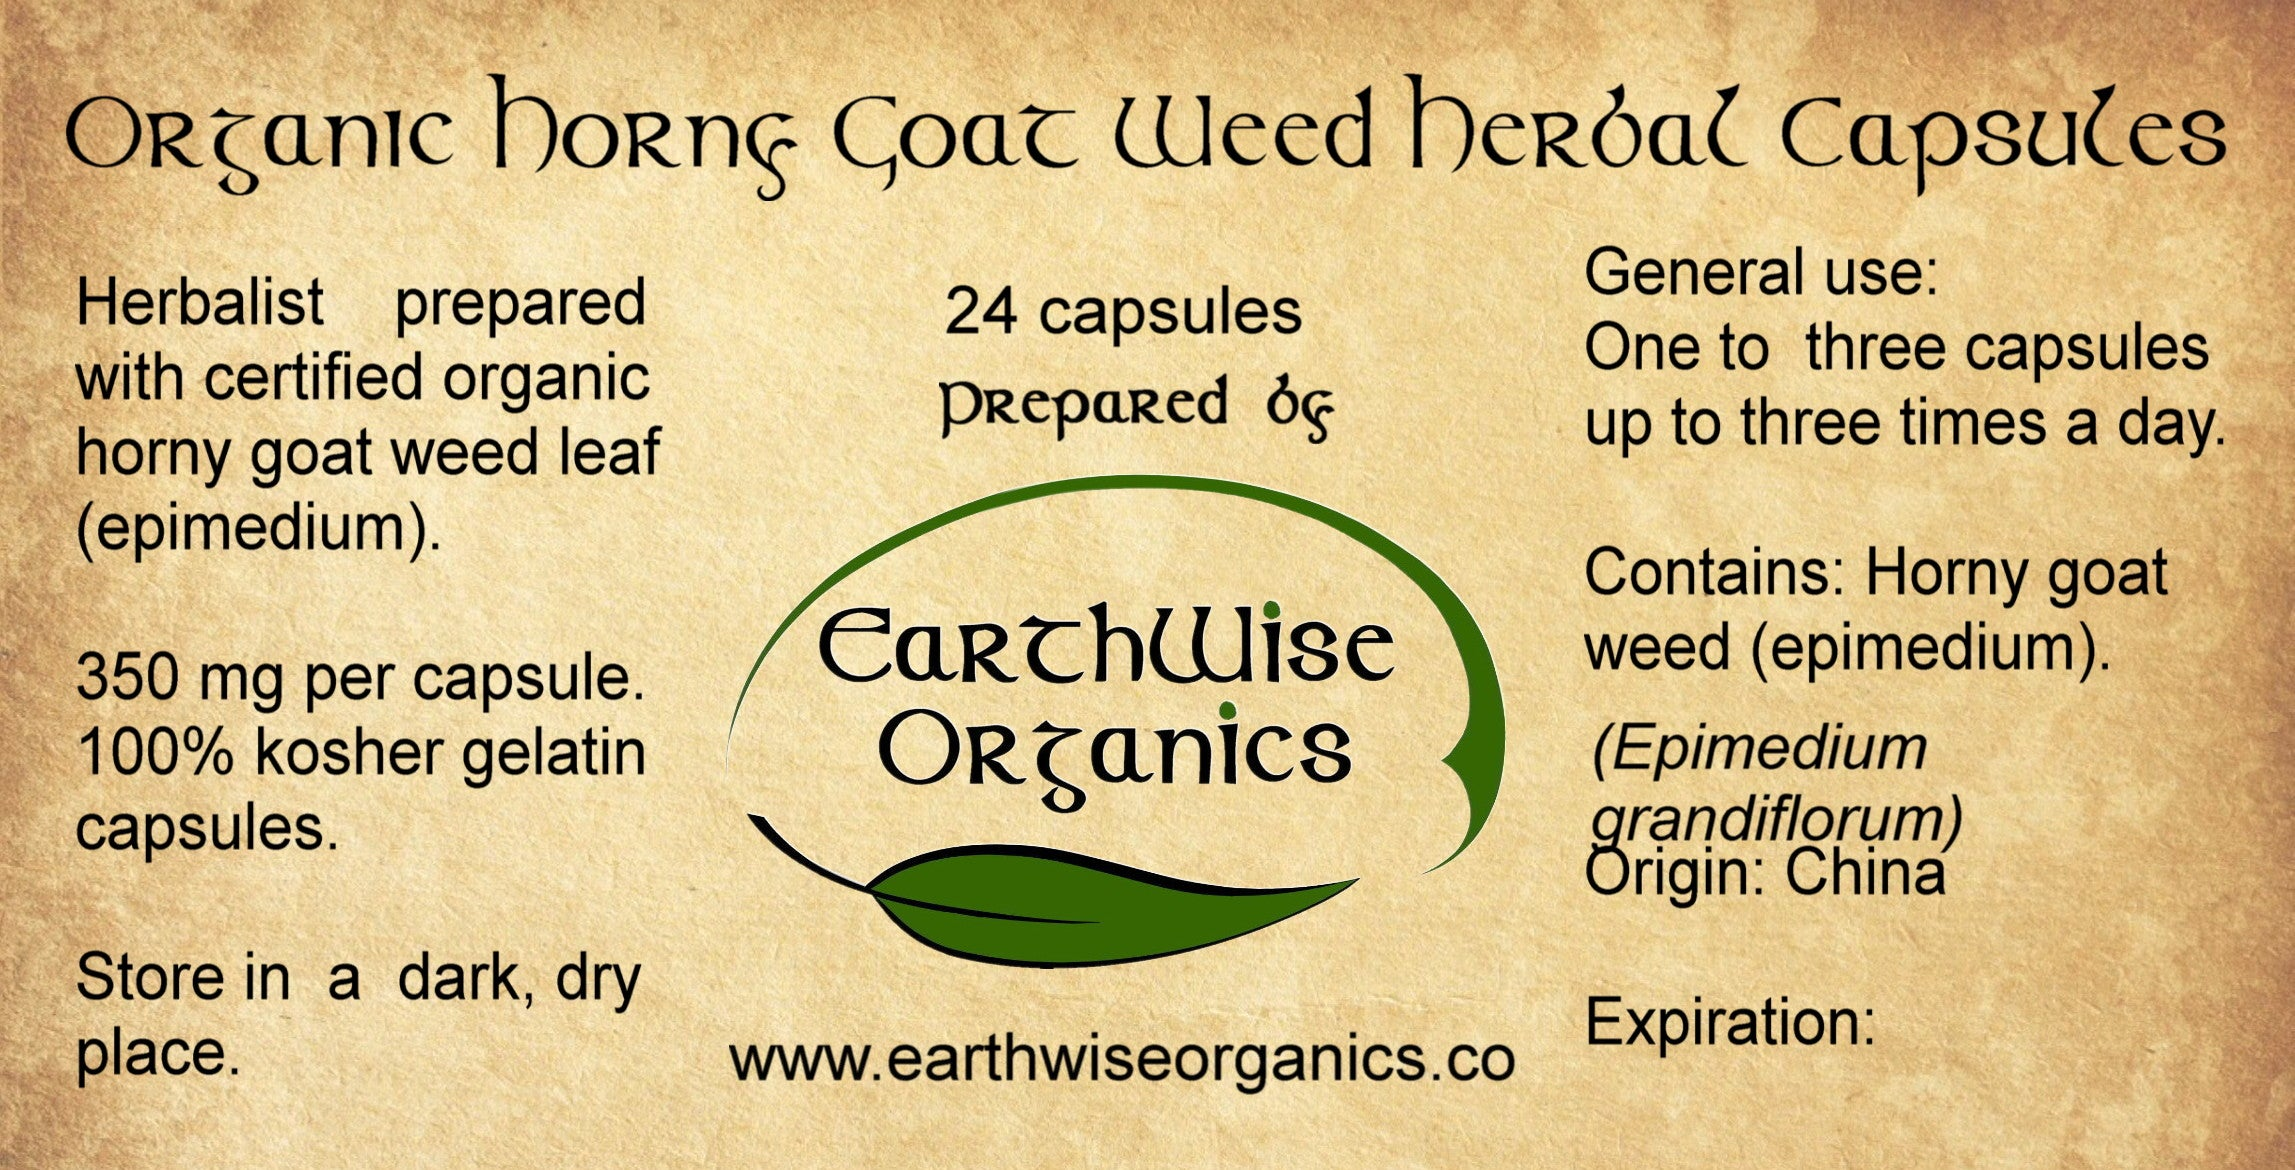 horny goat weed organic herbal capsules label